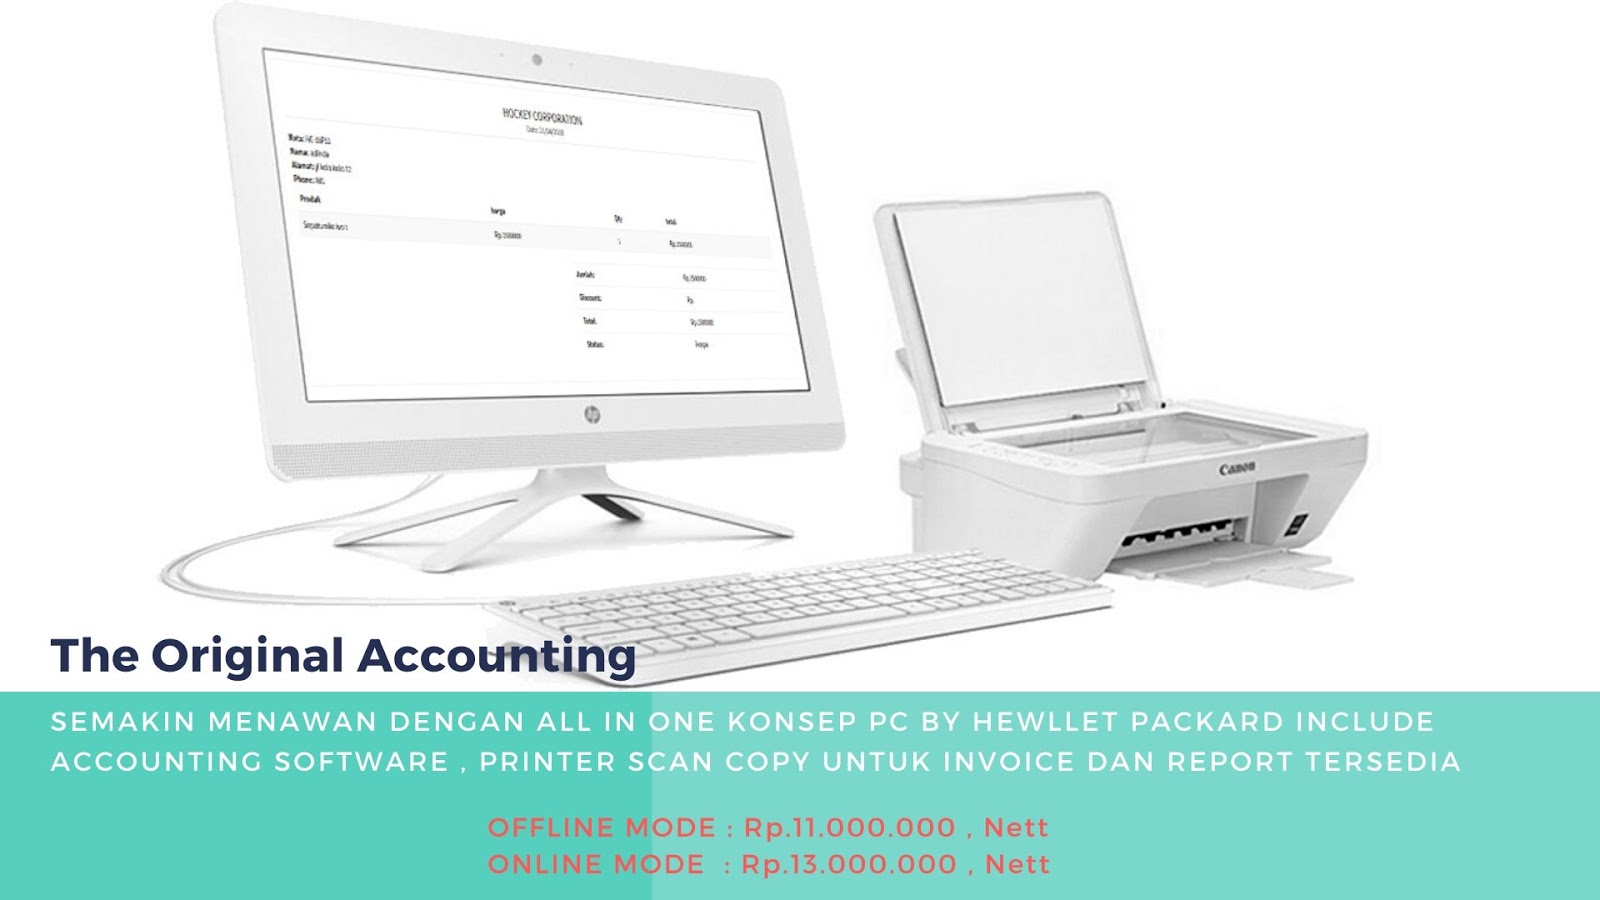 aplikasi, aplikasi accounting, aplikasi akuntansi, MESIN KASIR, PROGRAM, PROGRAM ACCOUNTING, program akuntansi, SOFTWARE, software accounting, SOFTWARE AKUNTANSI